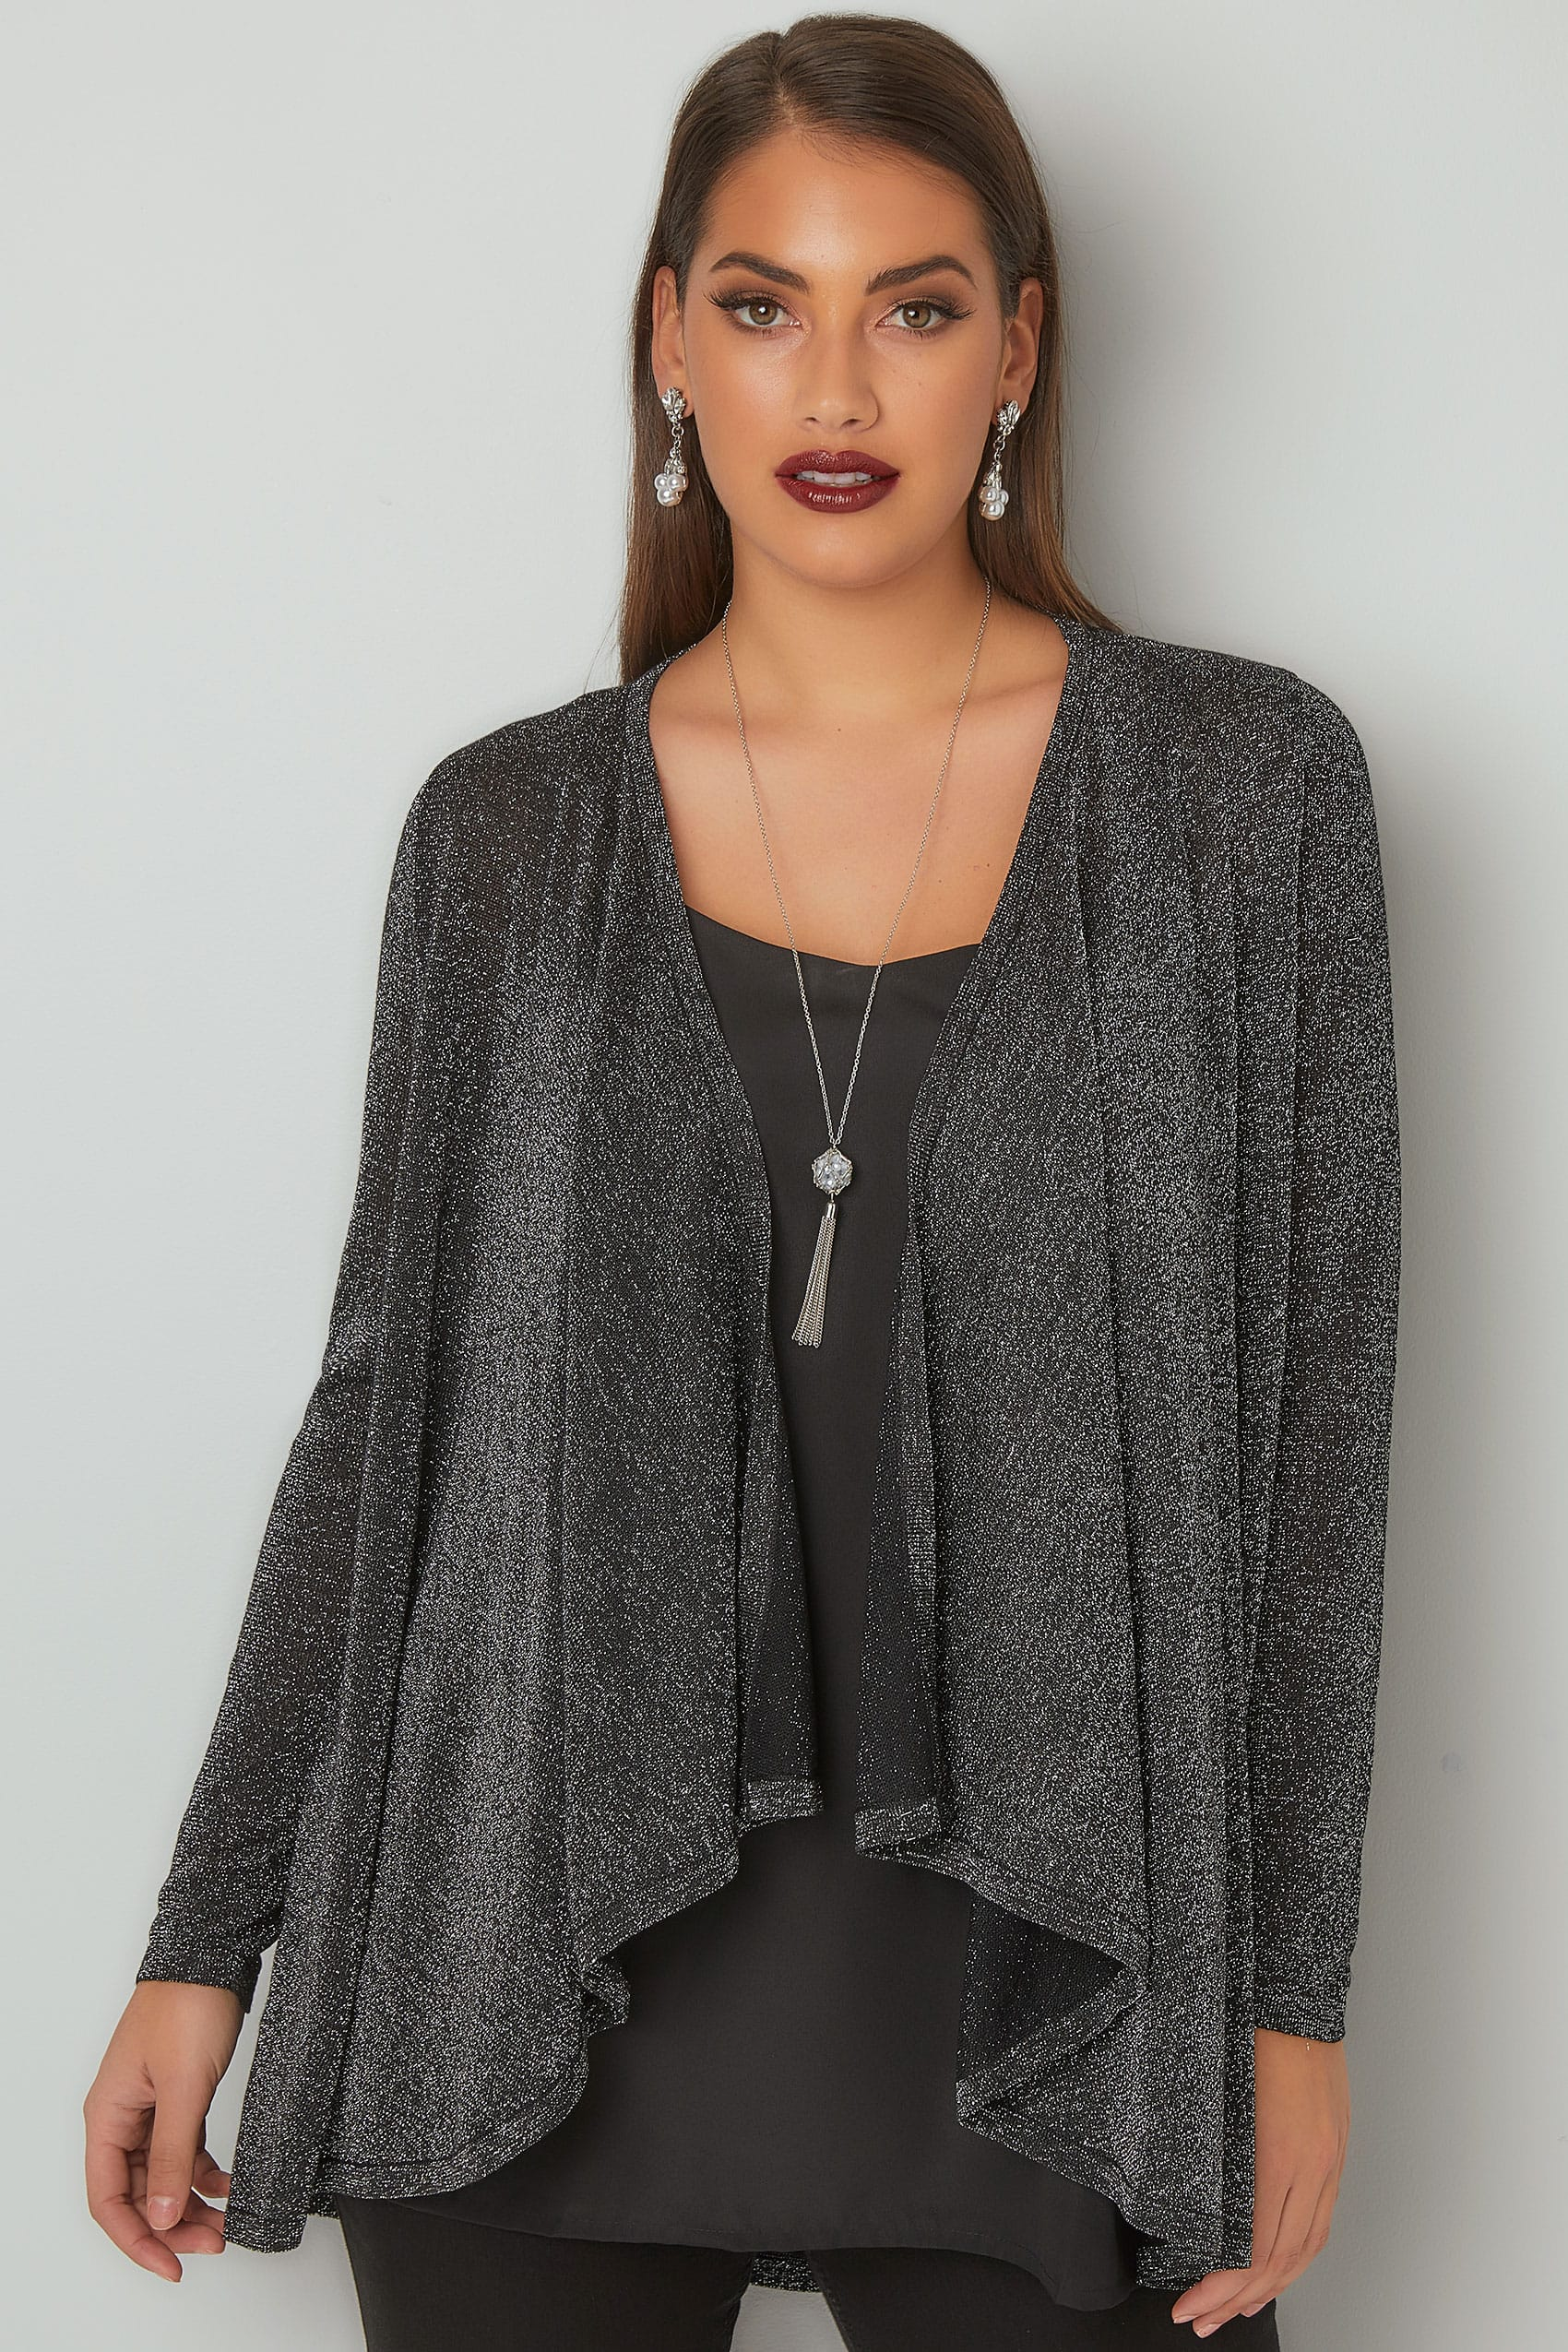 Silver Metallic Waterfall Cardigan, Plus size 16 to 36